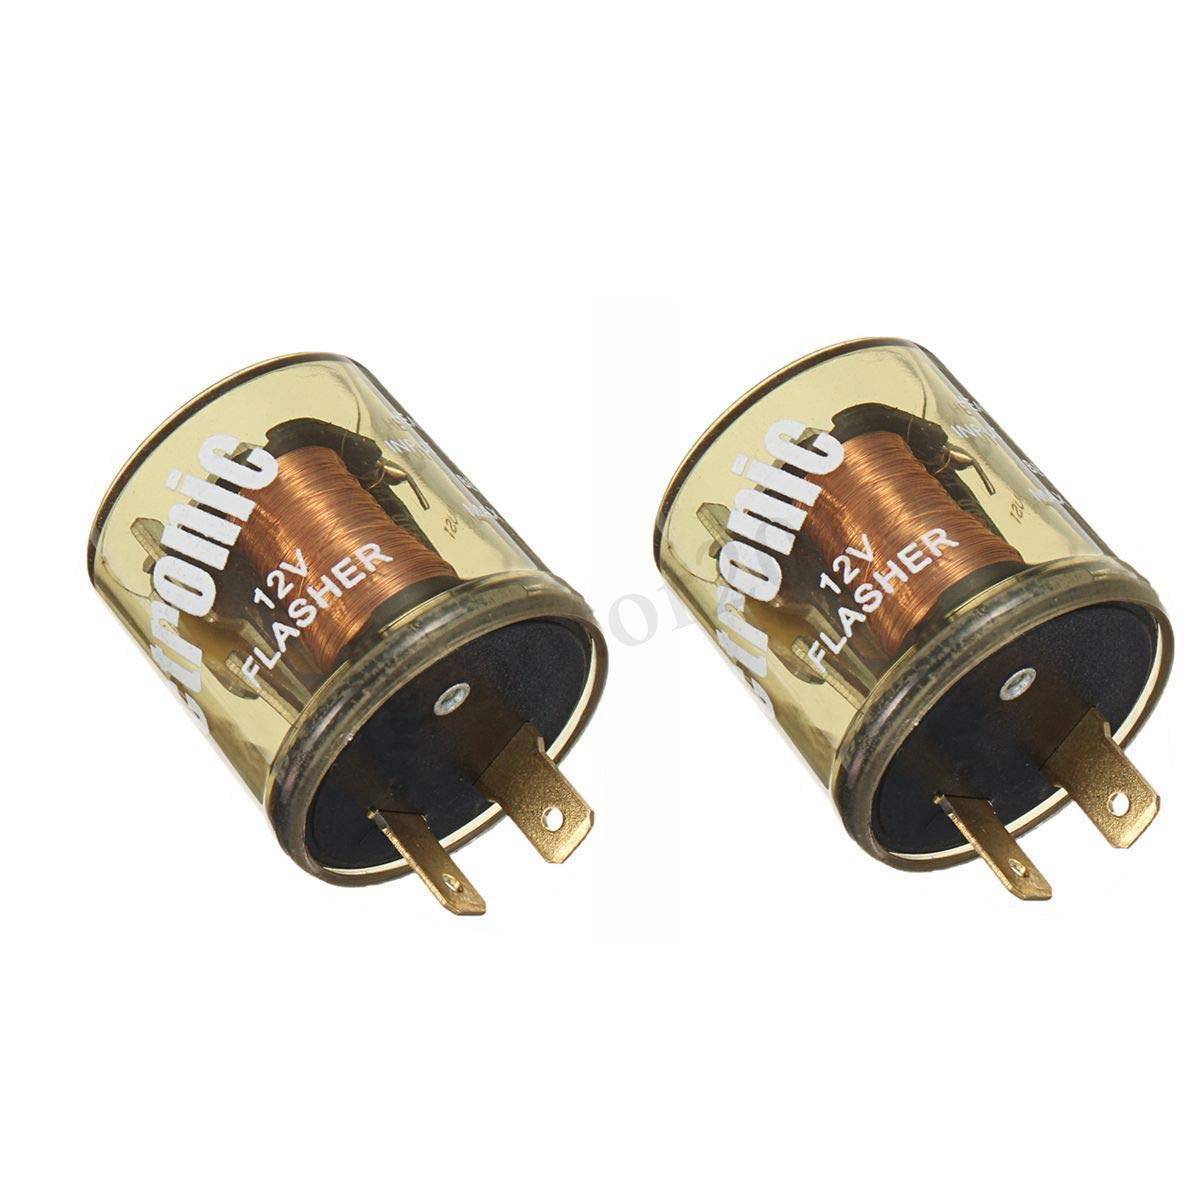 2x 2-Prong Electronic LED Compatible Turn Signal Flasher Relay EF32RL Round 25A